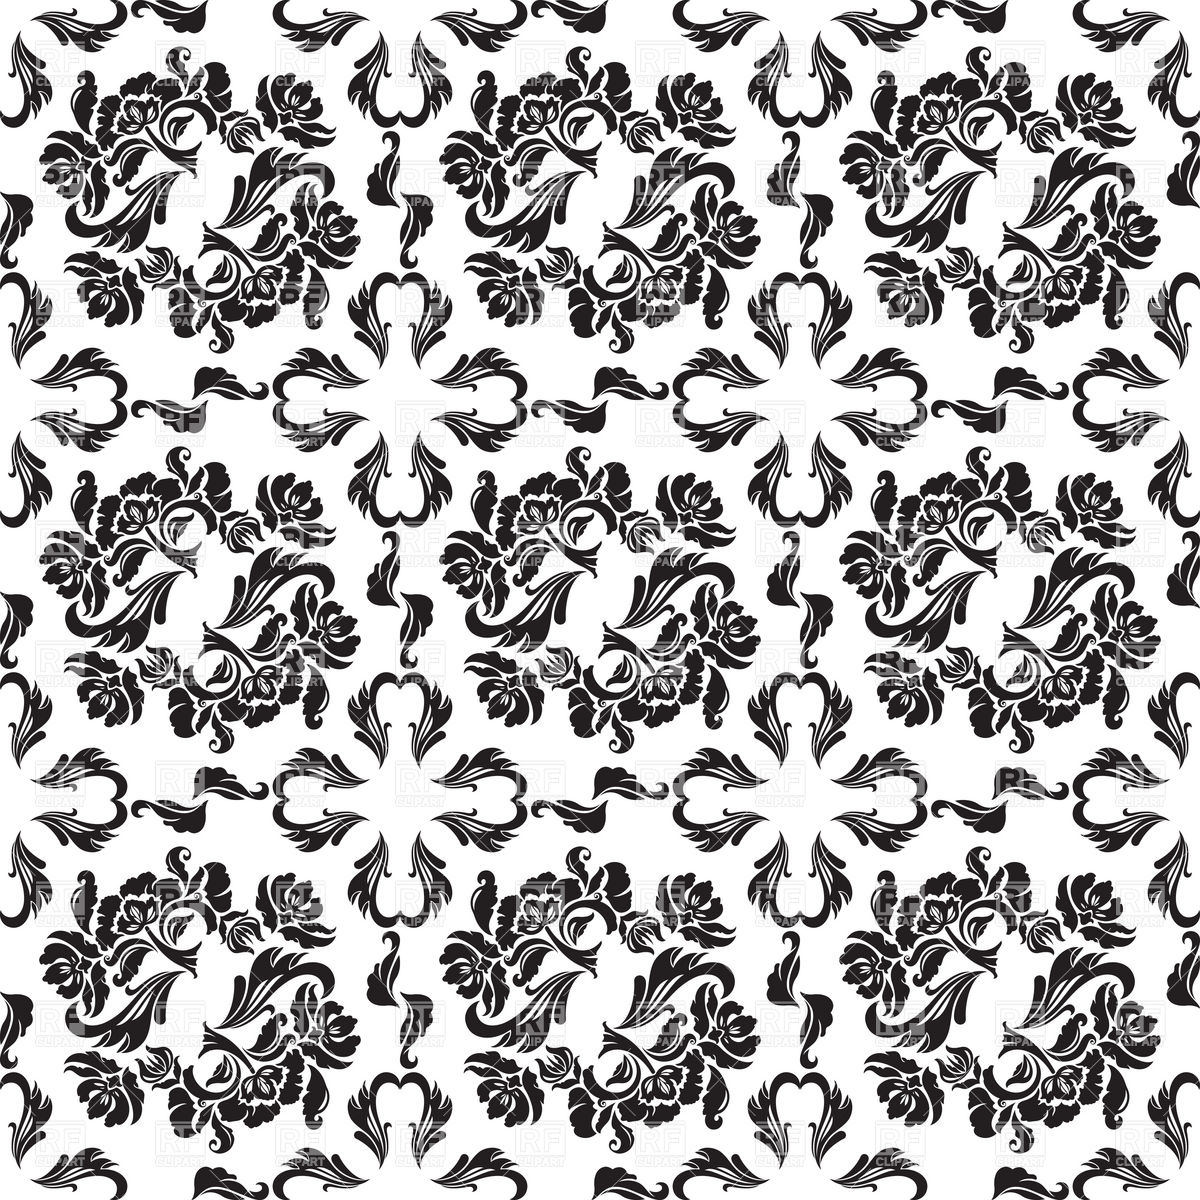 Seamless victorian wallpaper with floral pattern Vector Image.